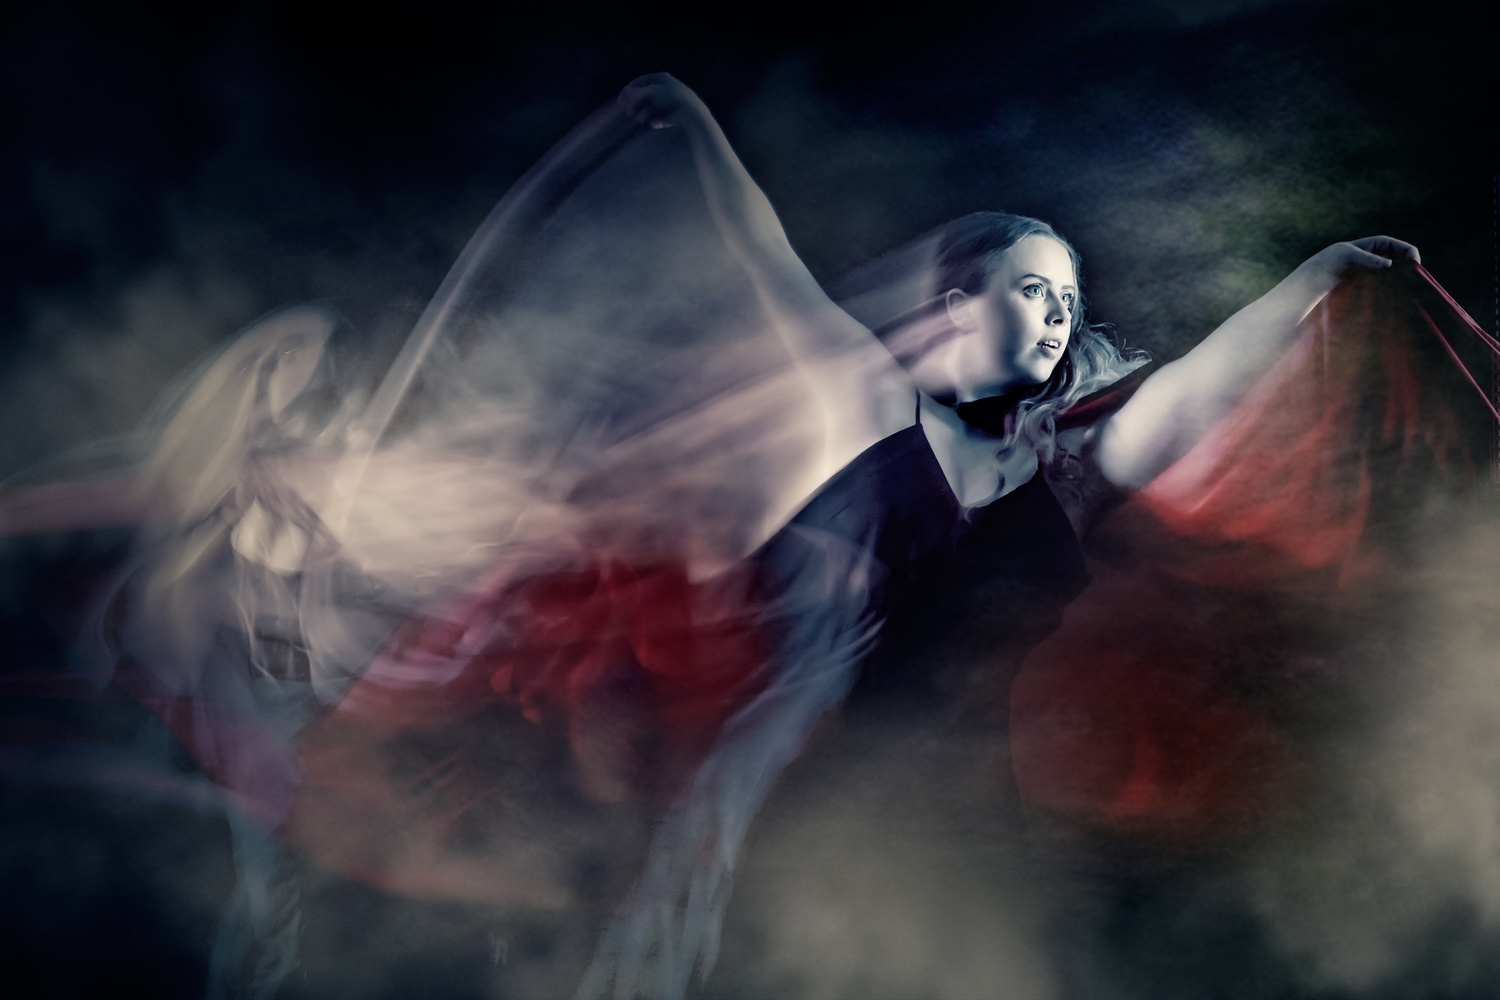 Rise of the Vampire - Abstract Dance by Hank Rintjema